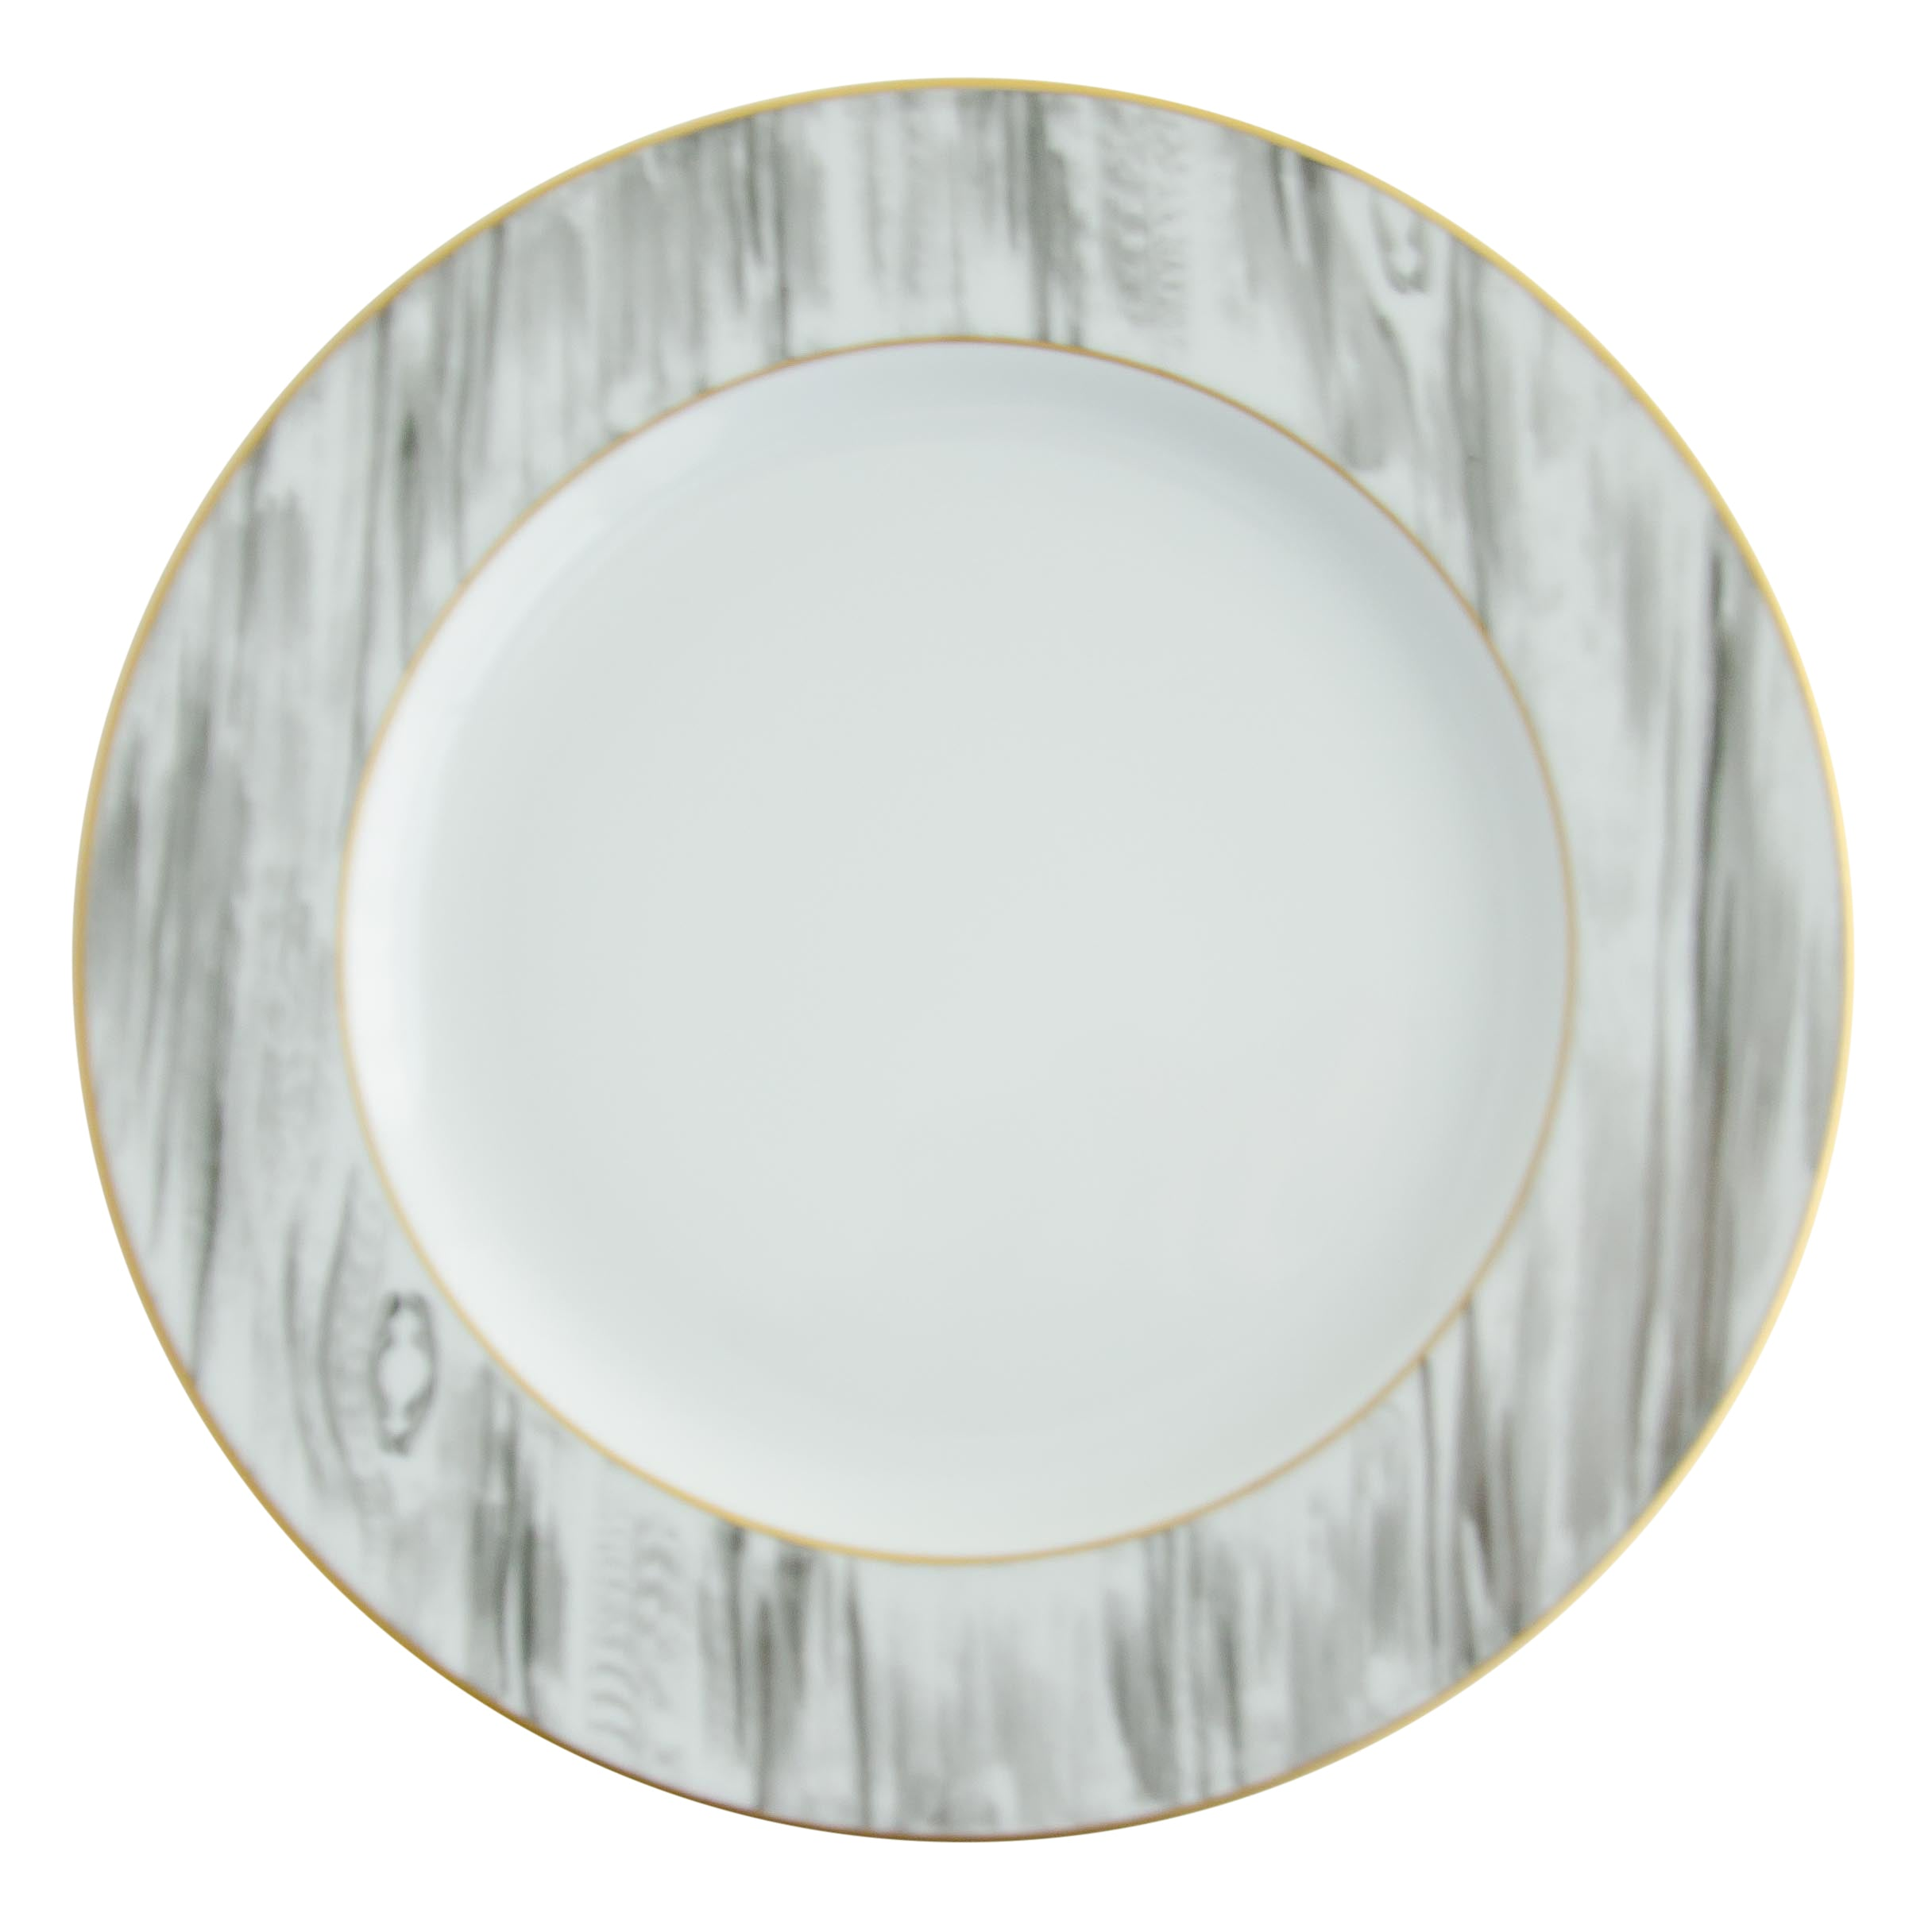 Thomas Pearl Dinnerware Collection  sc 1 st  Michael Devine & Thomas Pearl Dinnerware Collection | Michael Devine